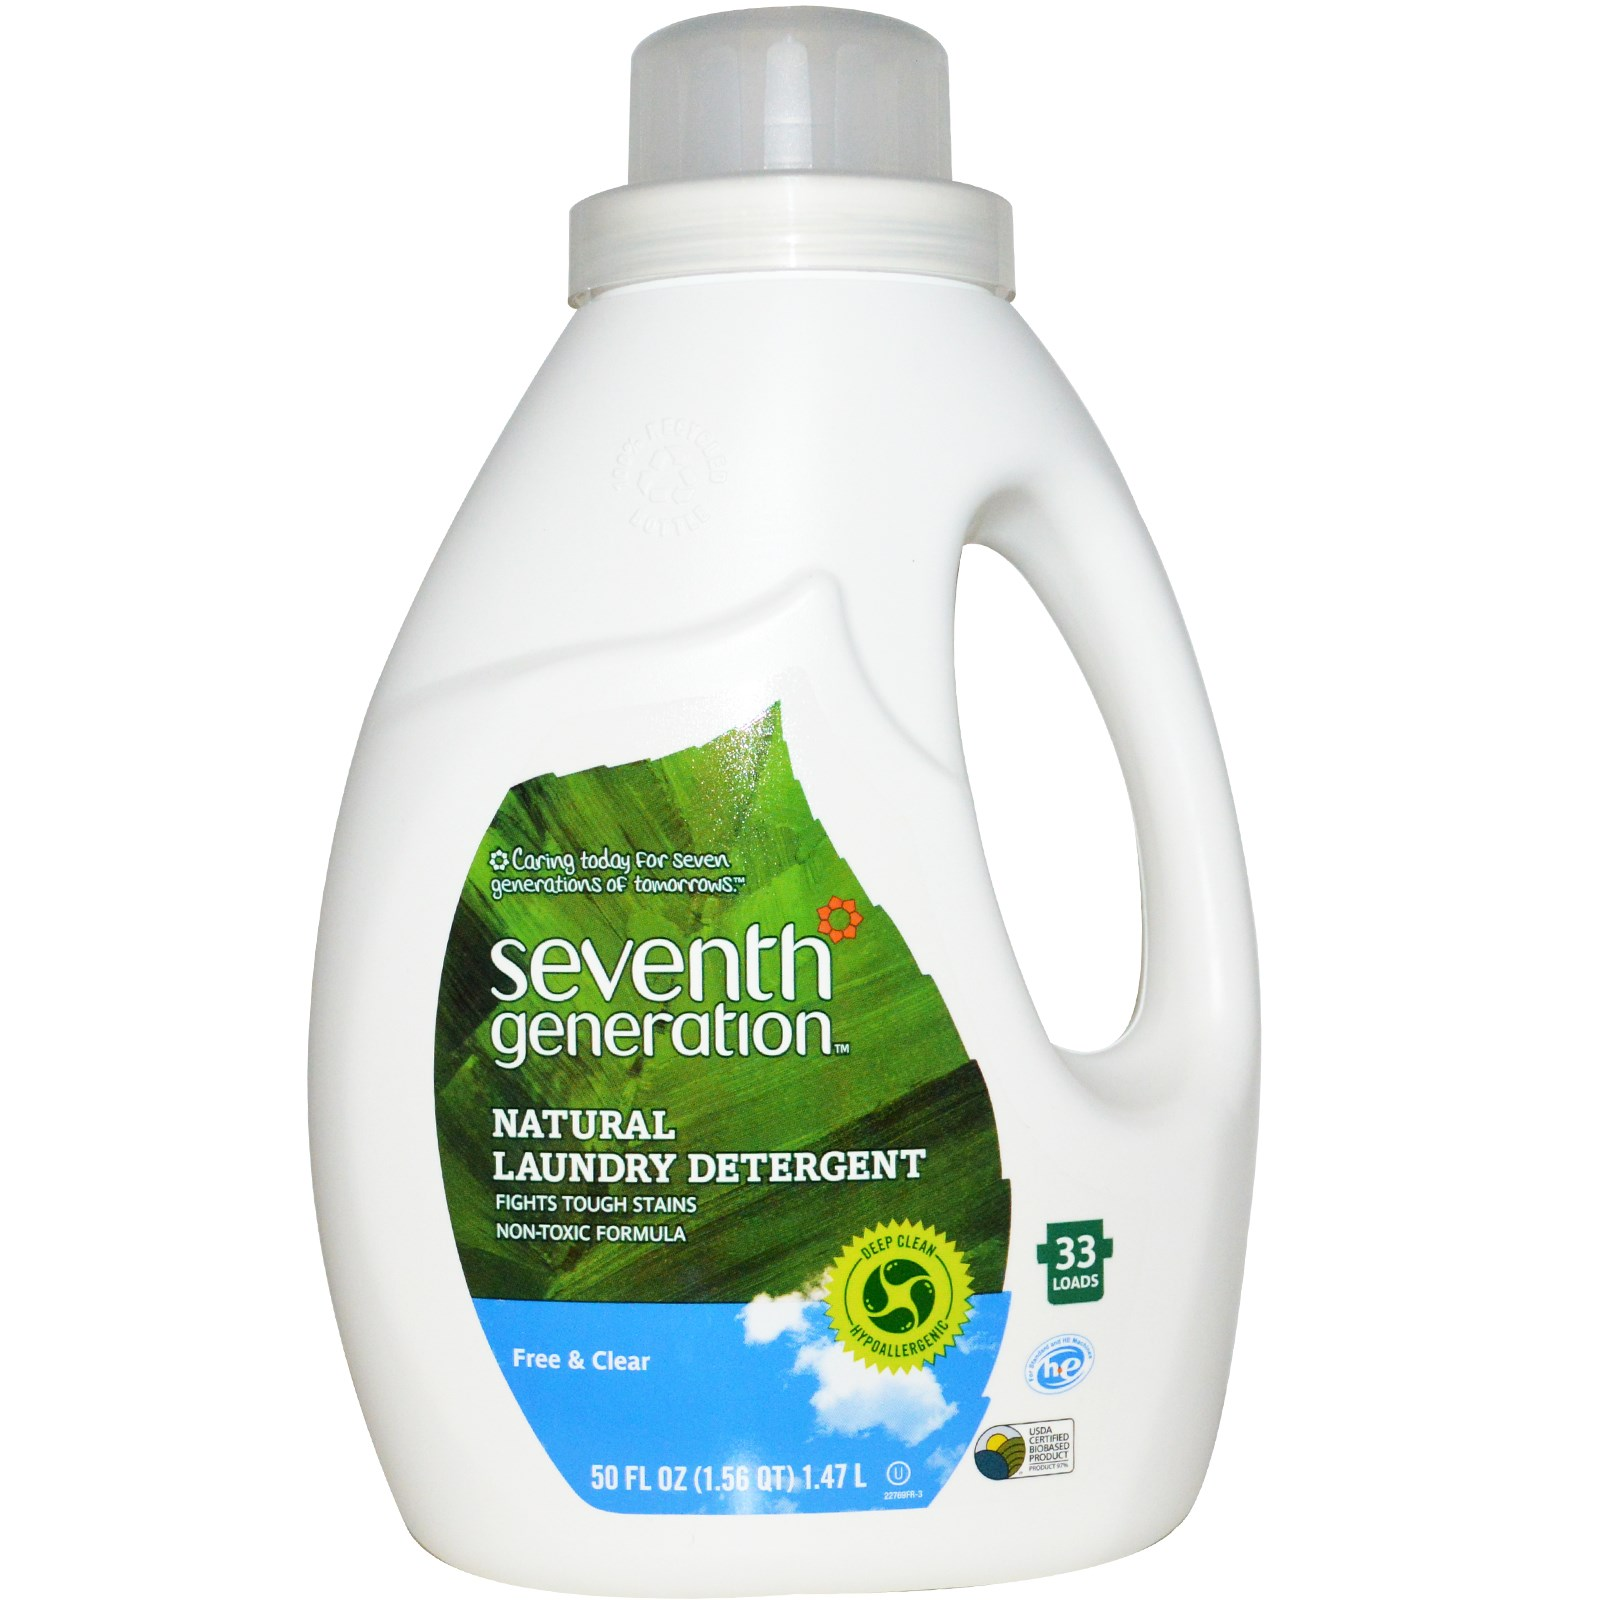 What is the best natural laundry detergent